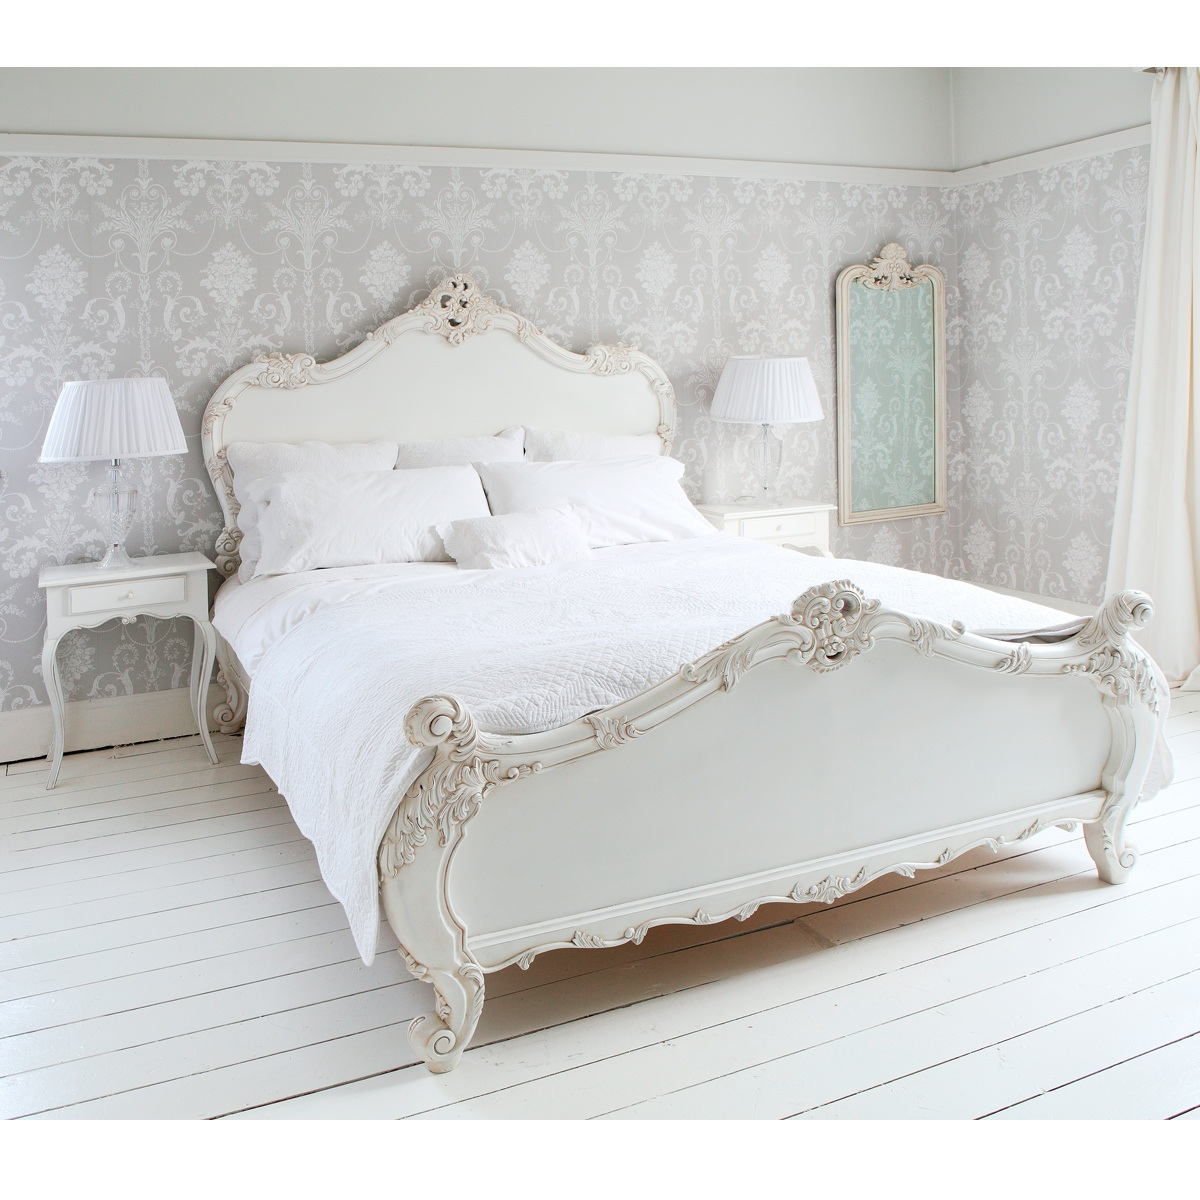 Provencal Sassy White French Bed | French Beds | Beds & Mattresses ...